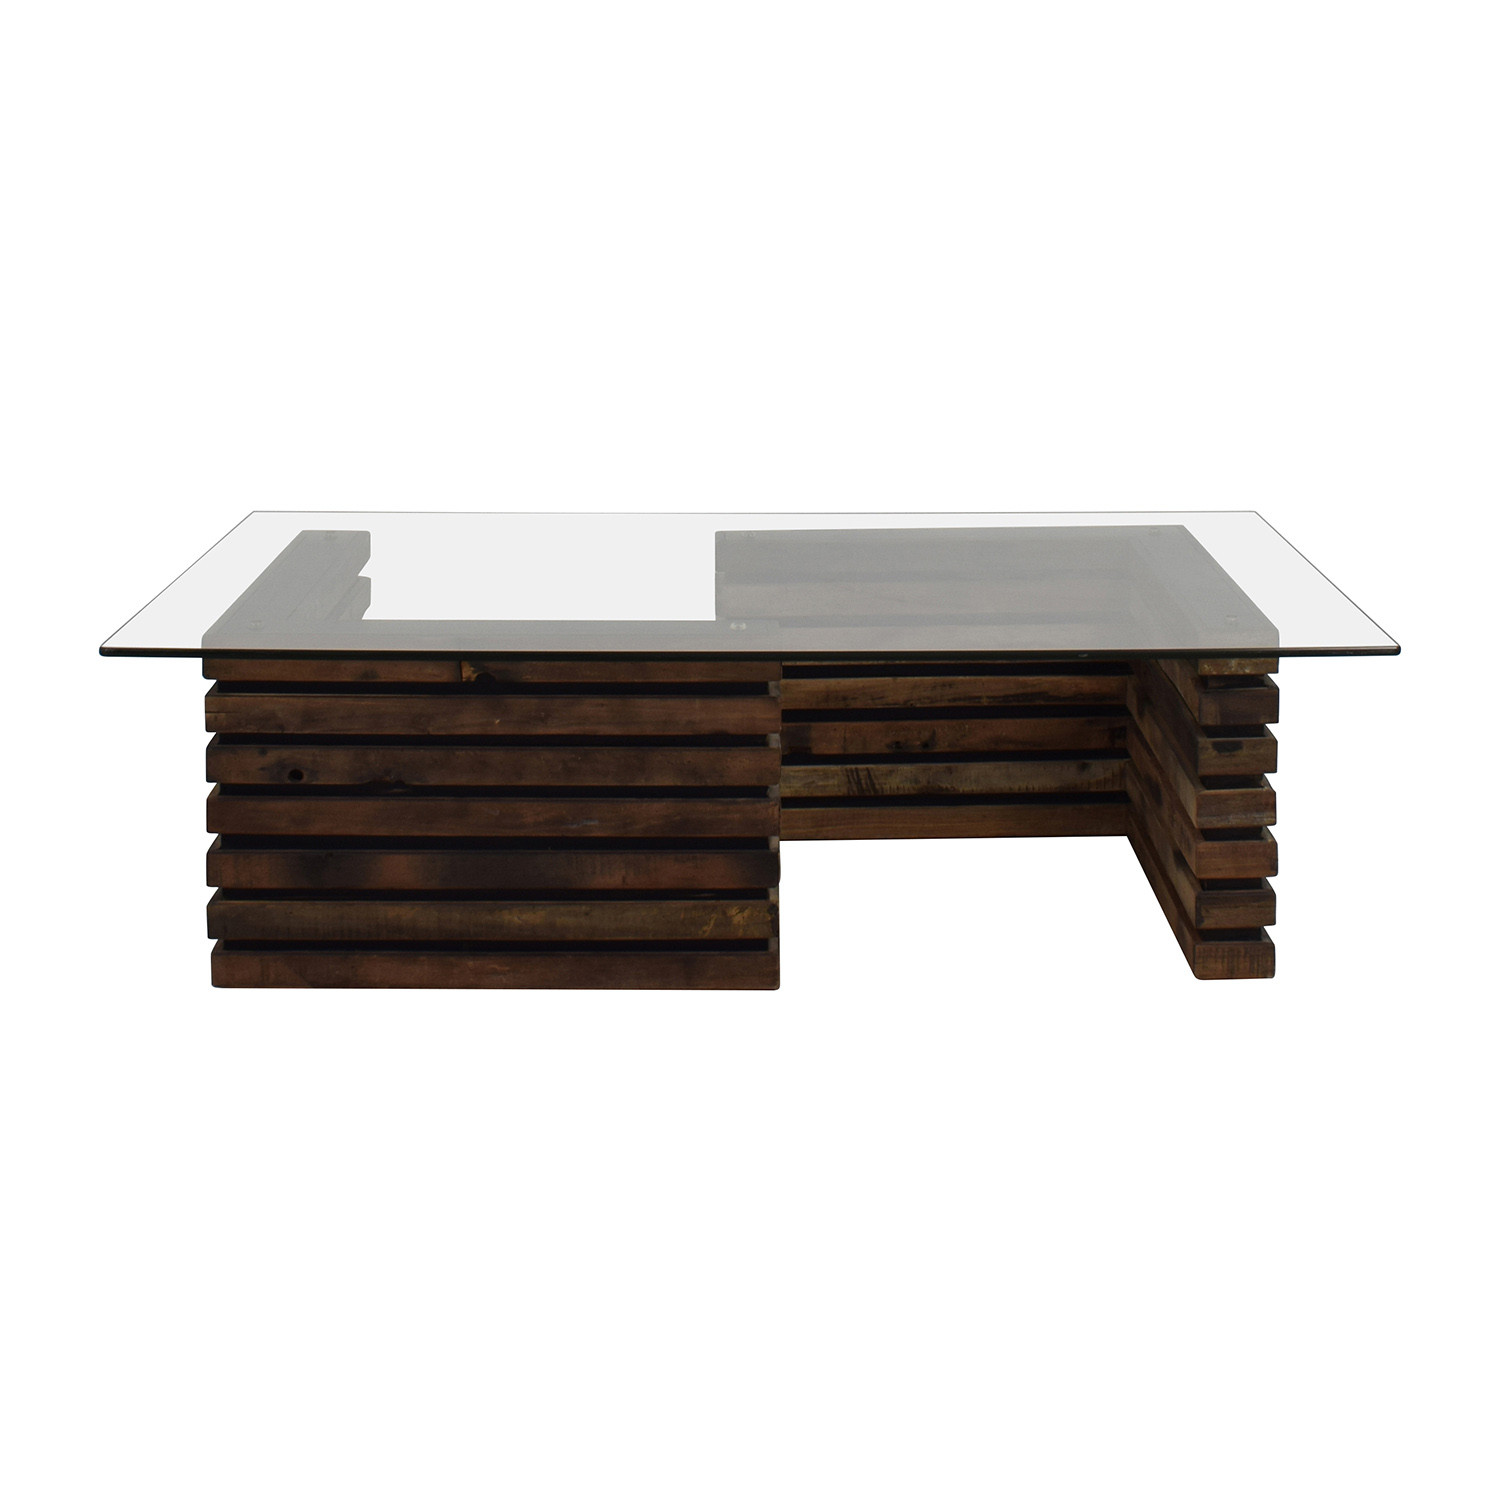 Best ideas about Wood And Glass Coffee Table . Save or Pin Tables Used Tables for sale Now.